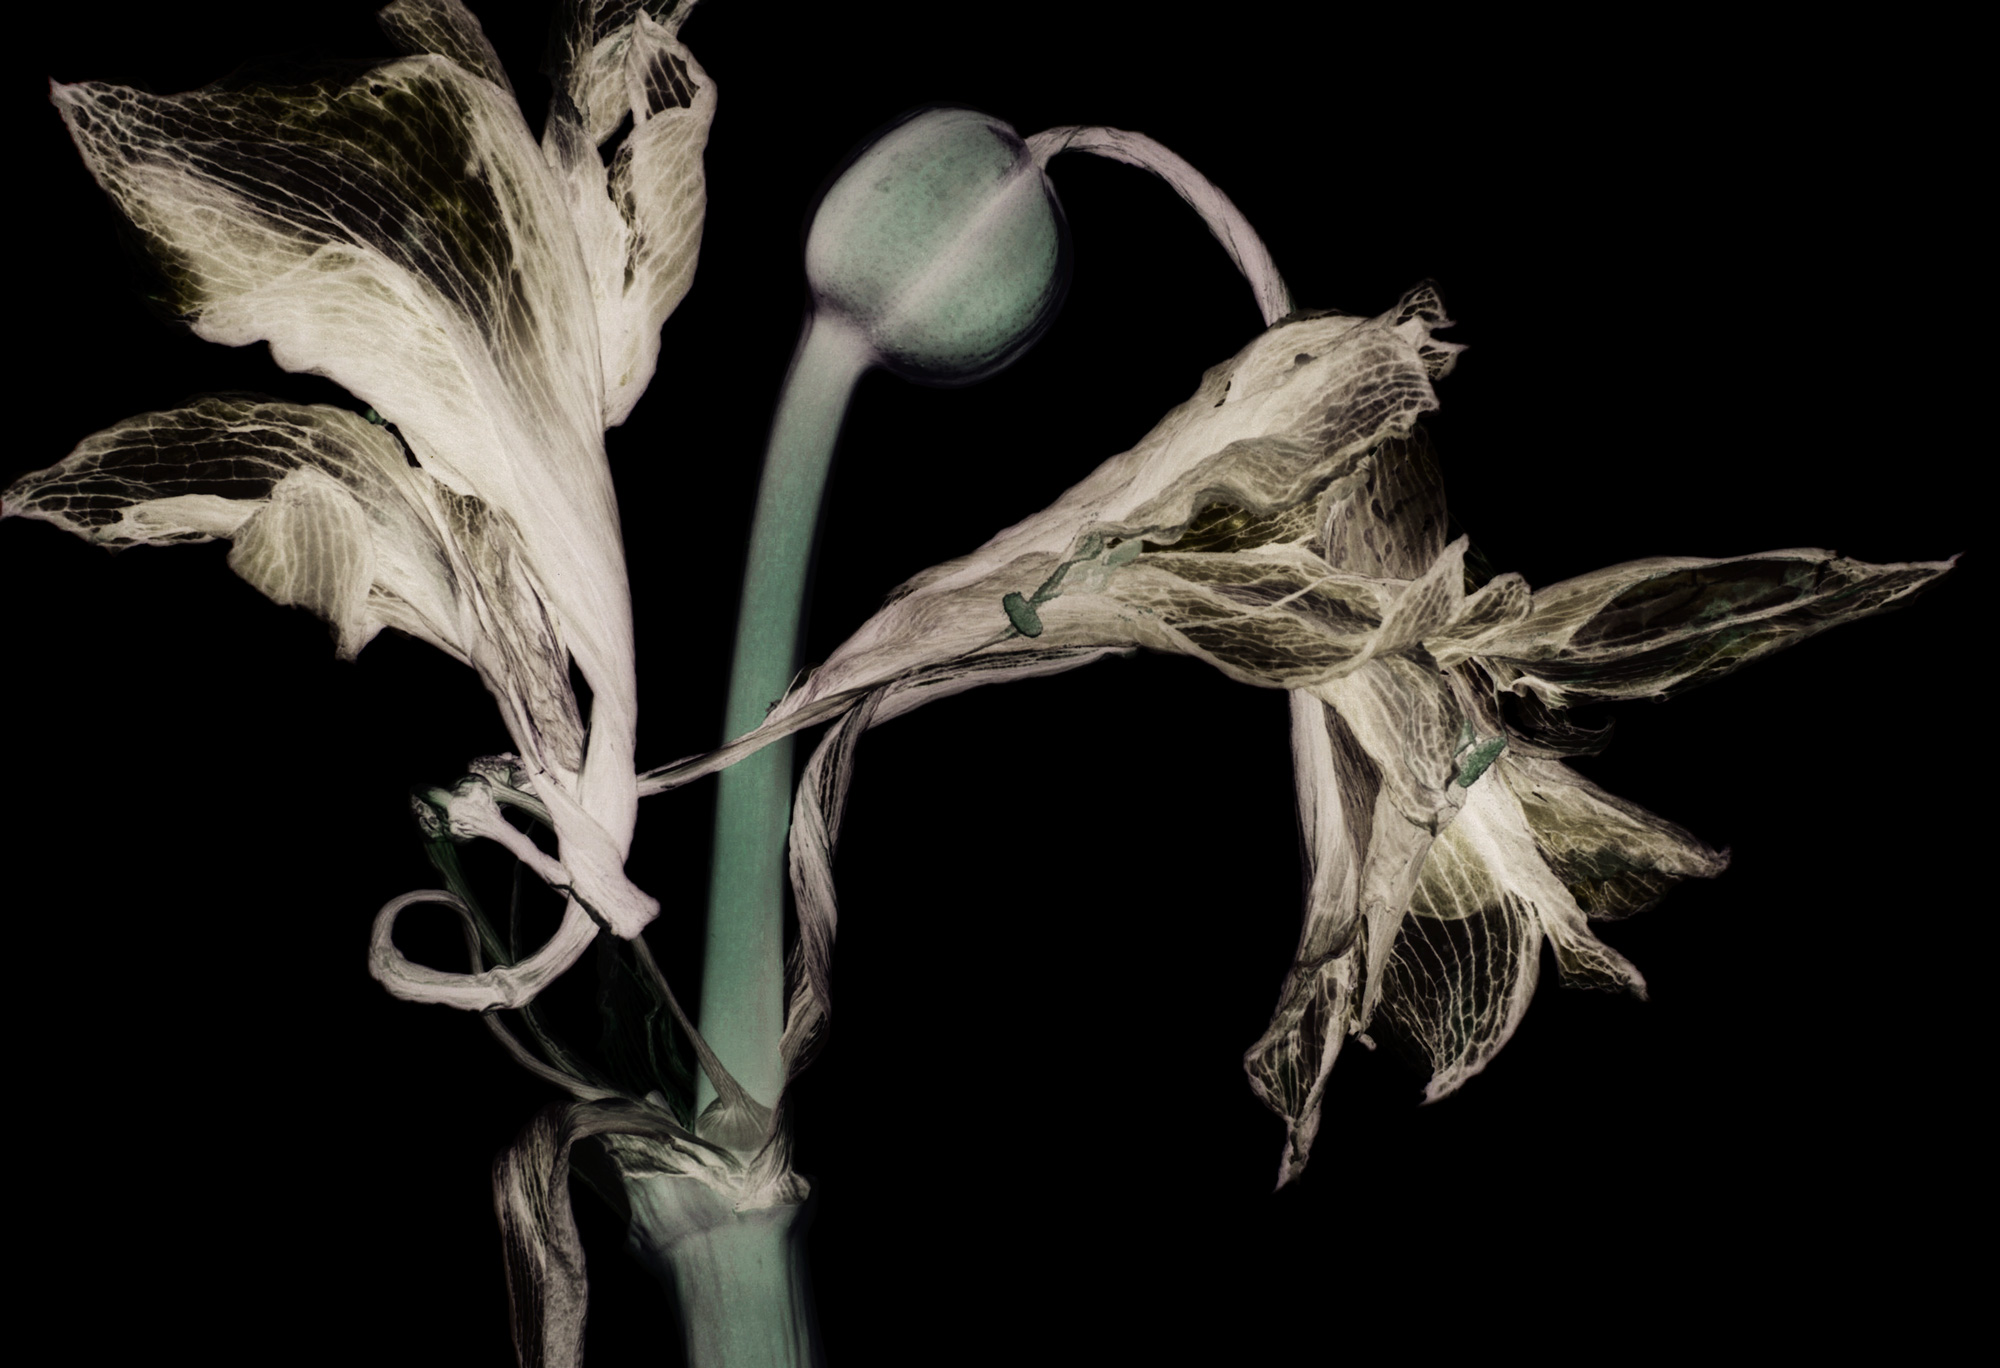 Flower Died Amaryllis 1 inv., 2016